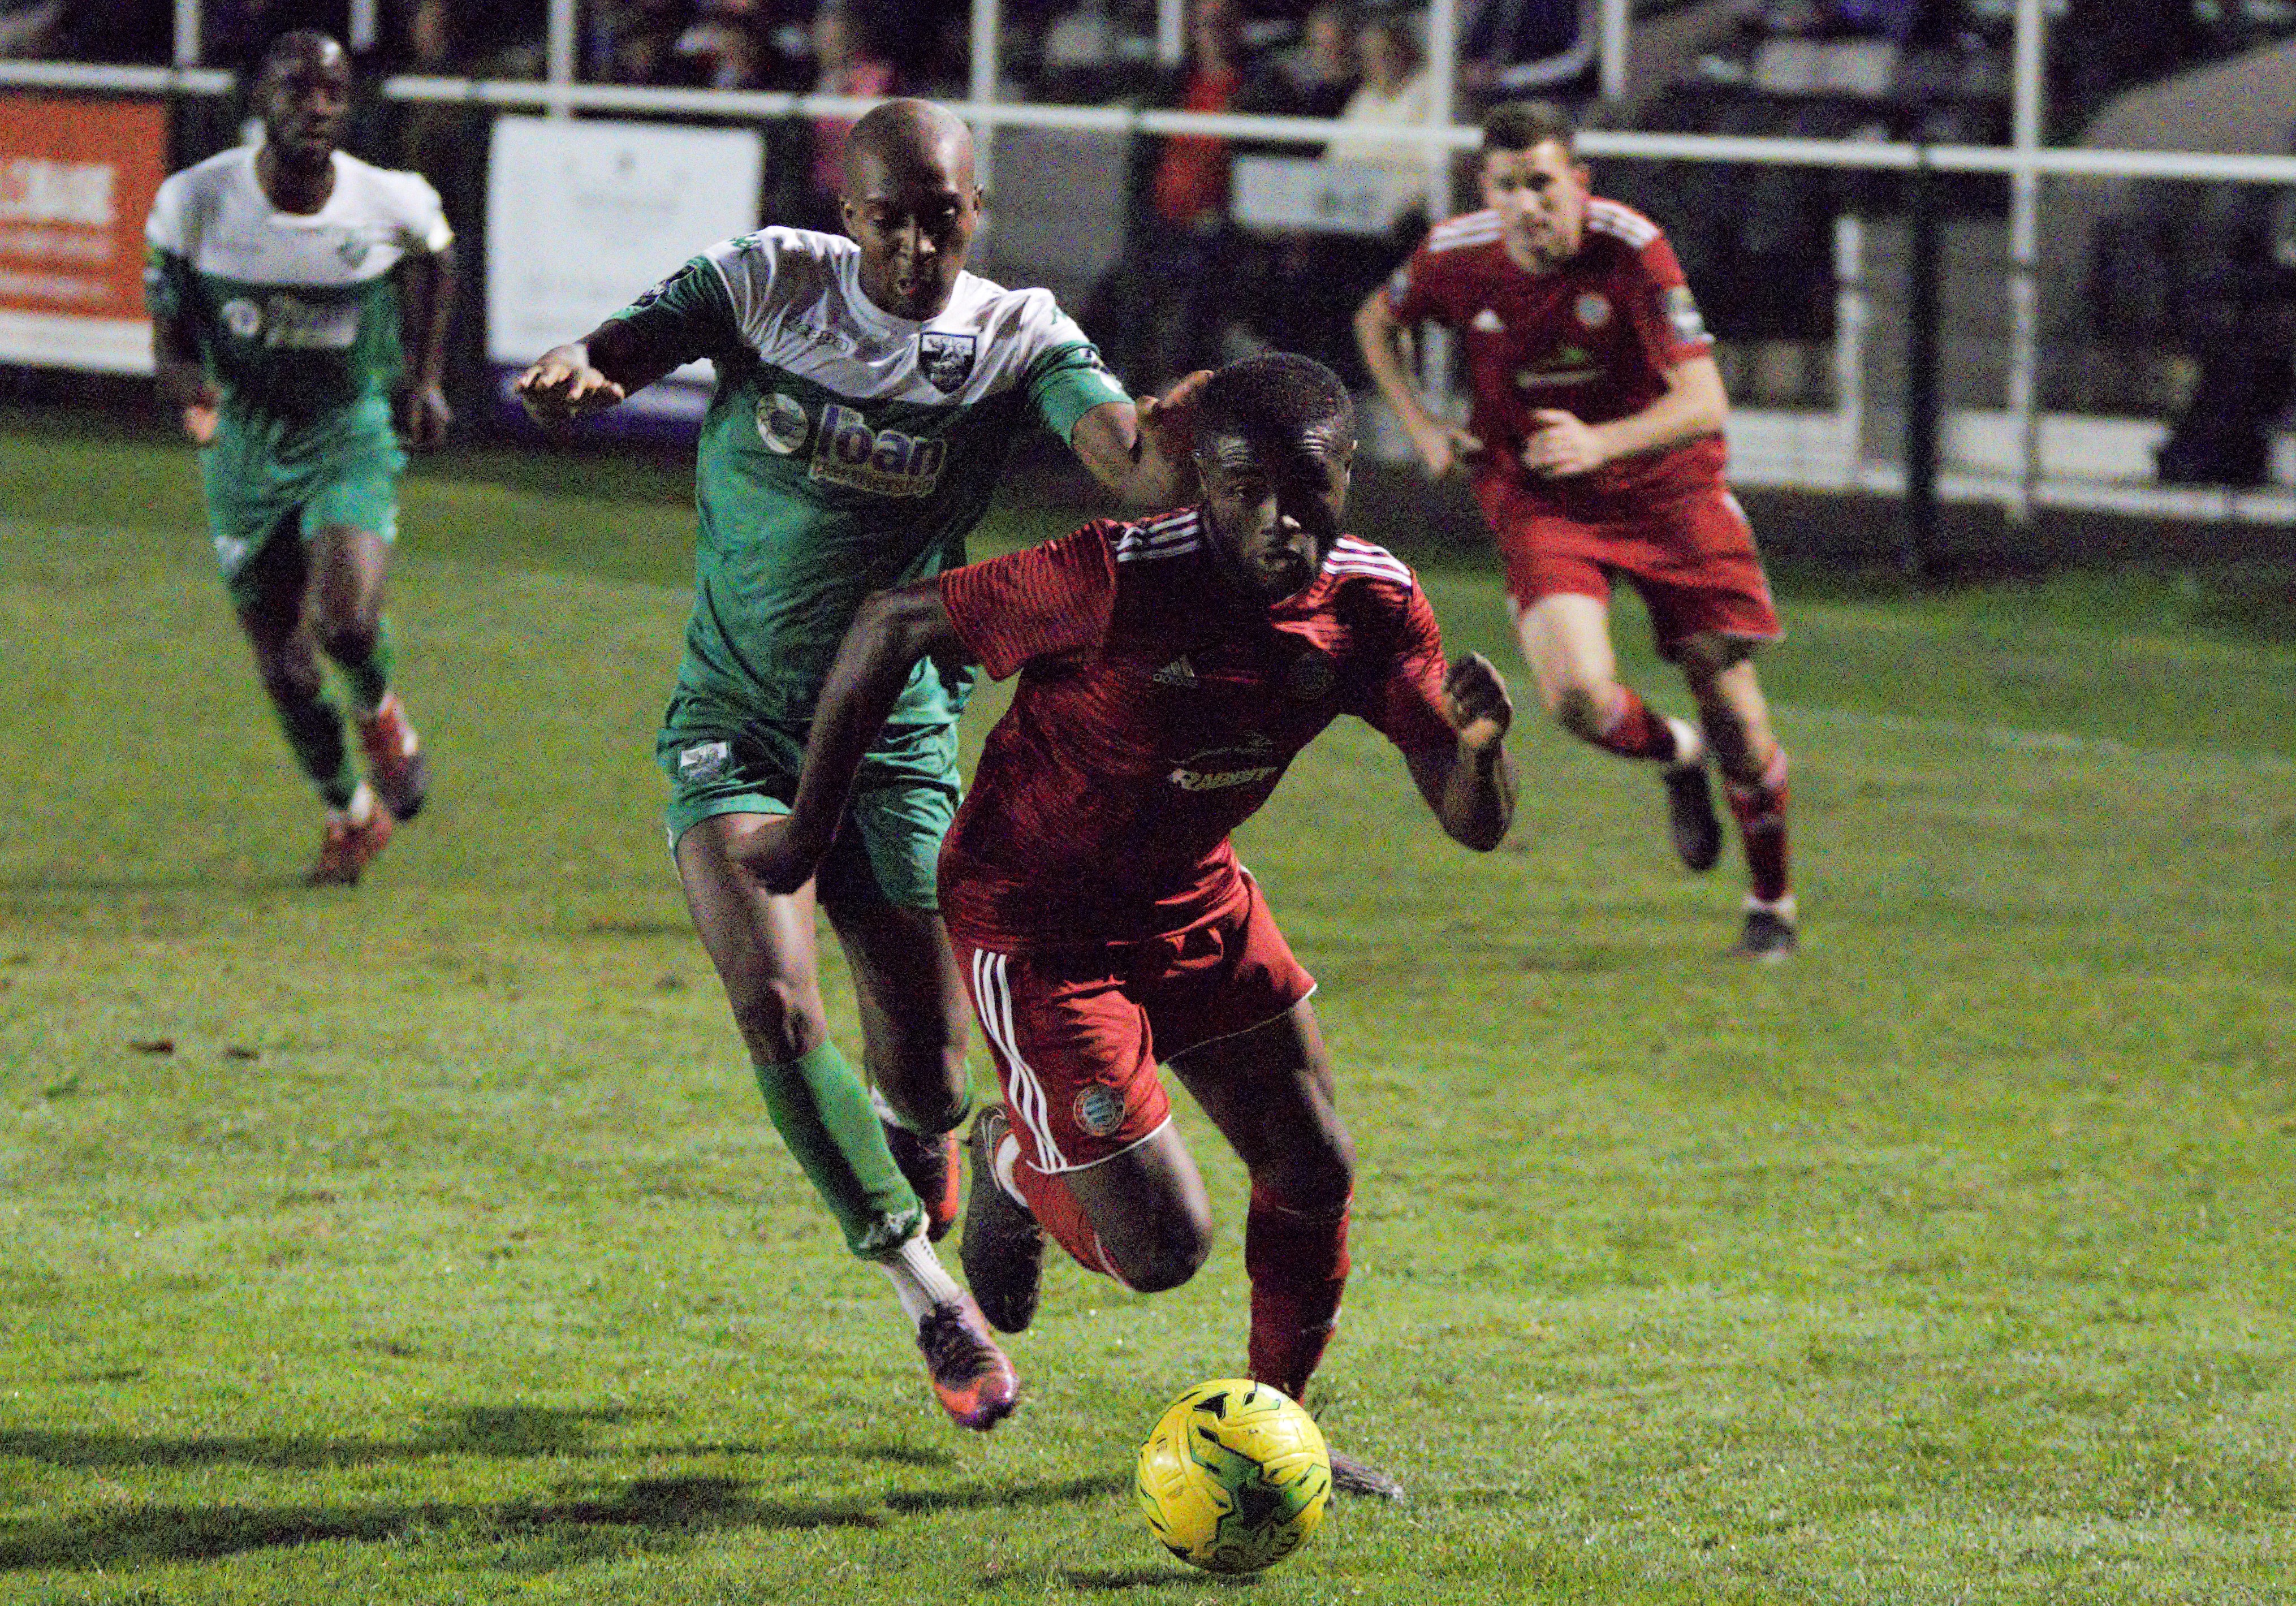 Read the full article - Star Of David Sees Reds Ease Past Tanners